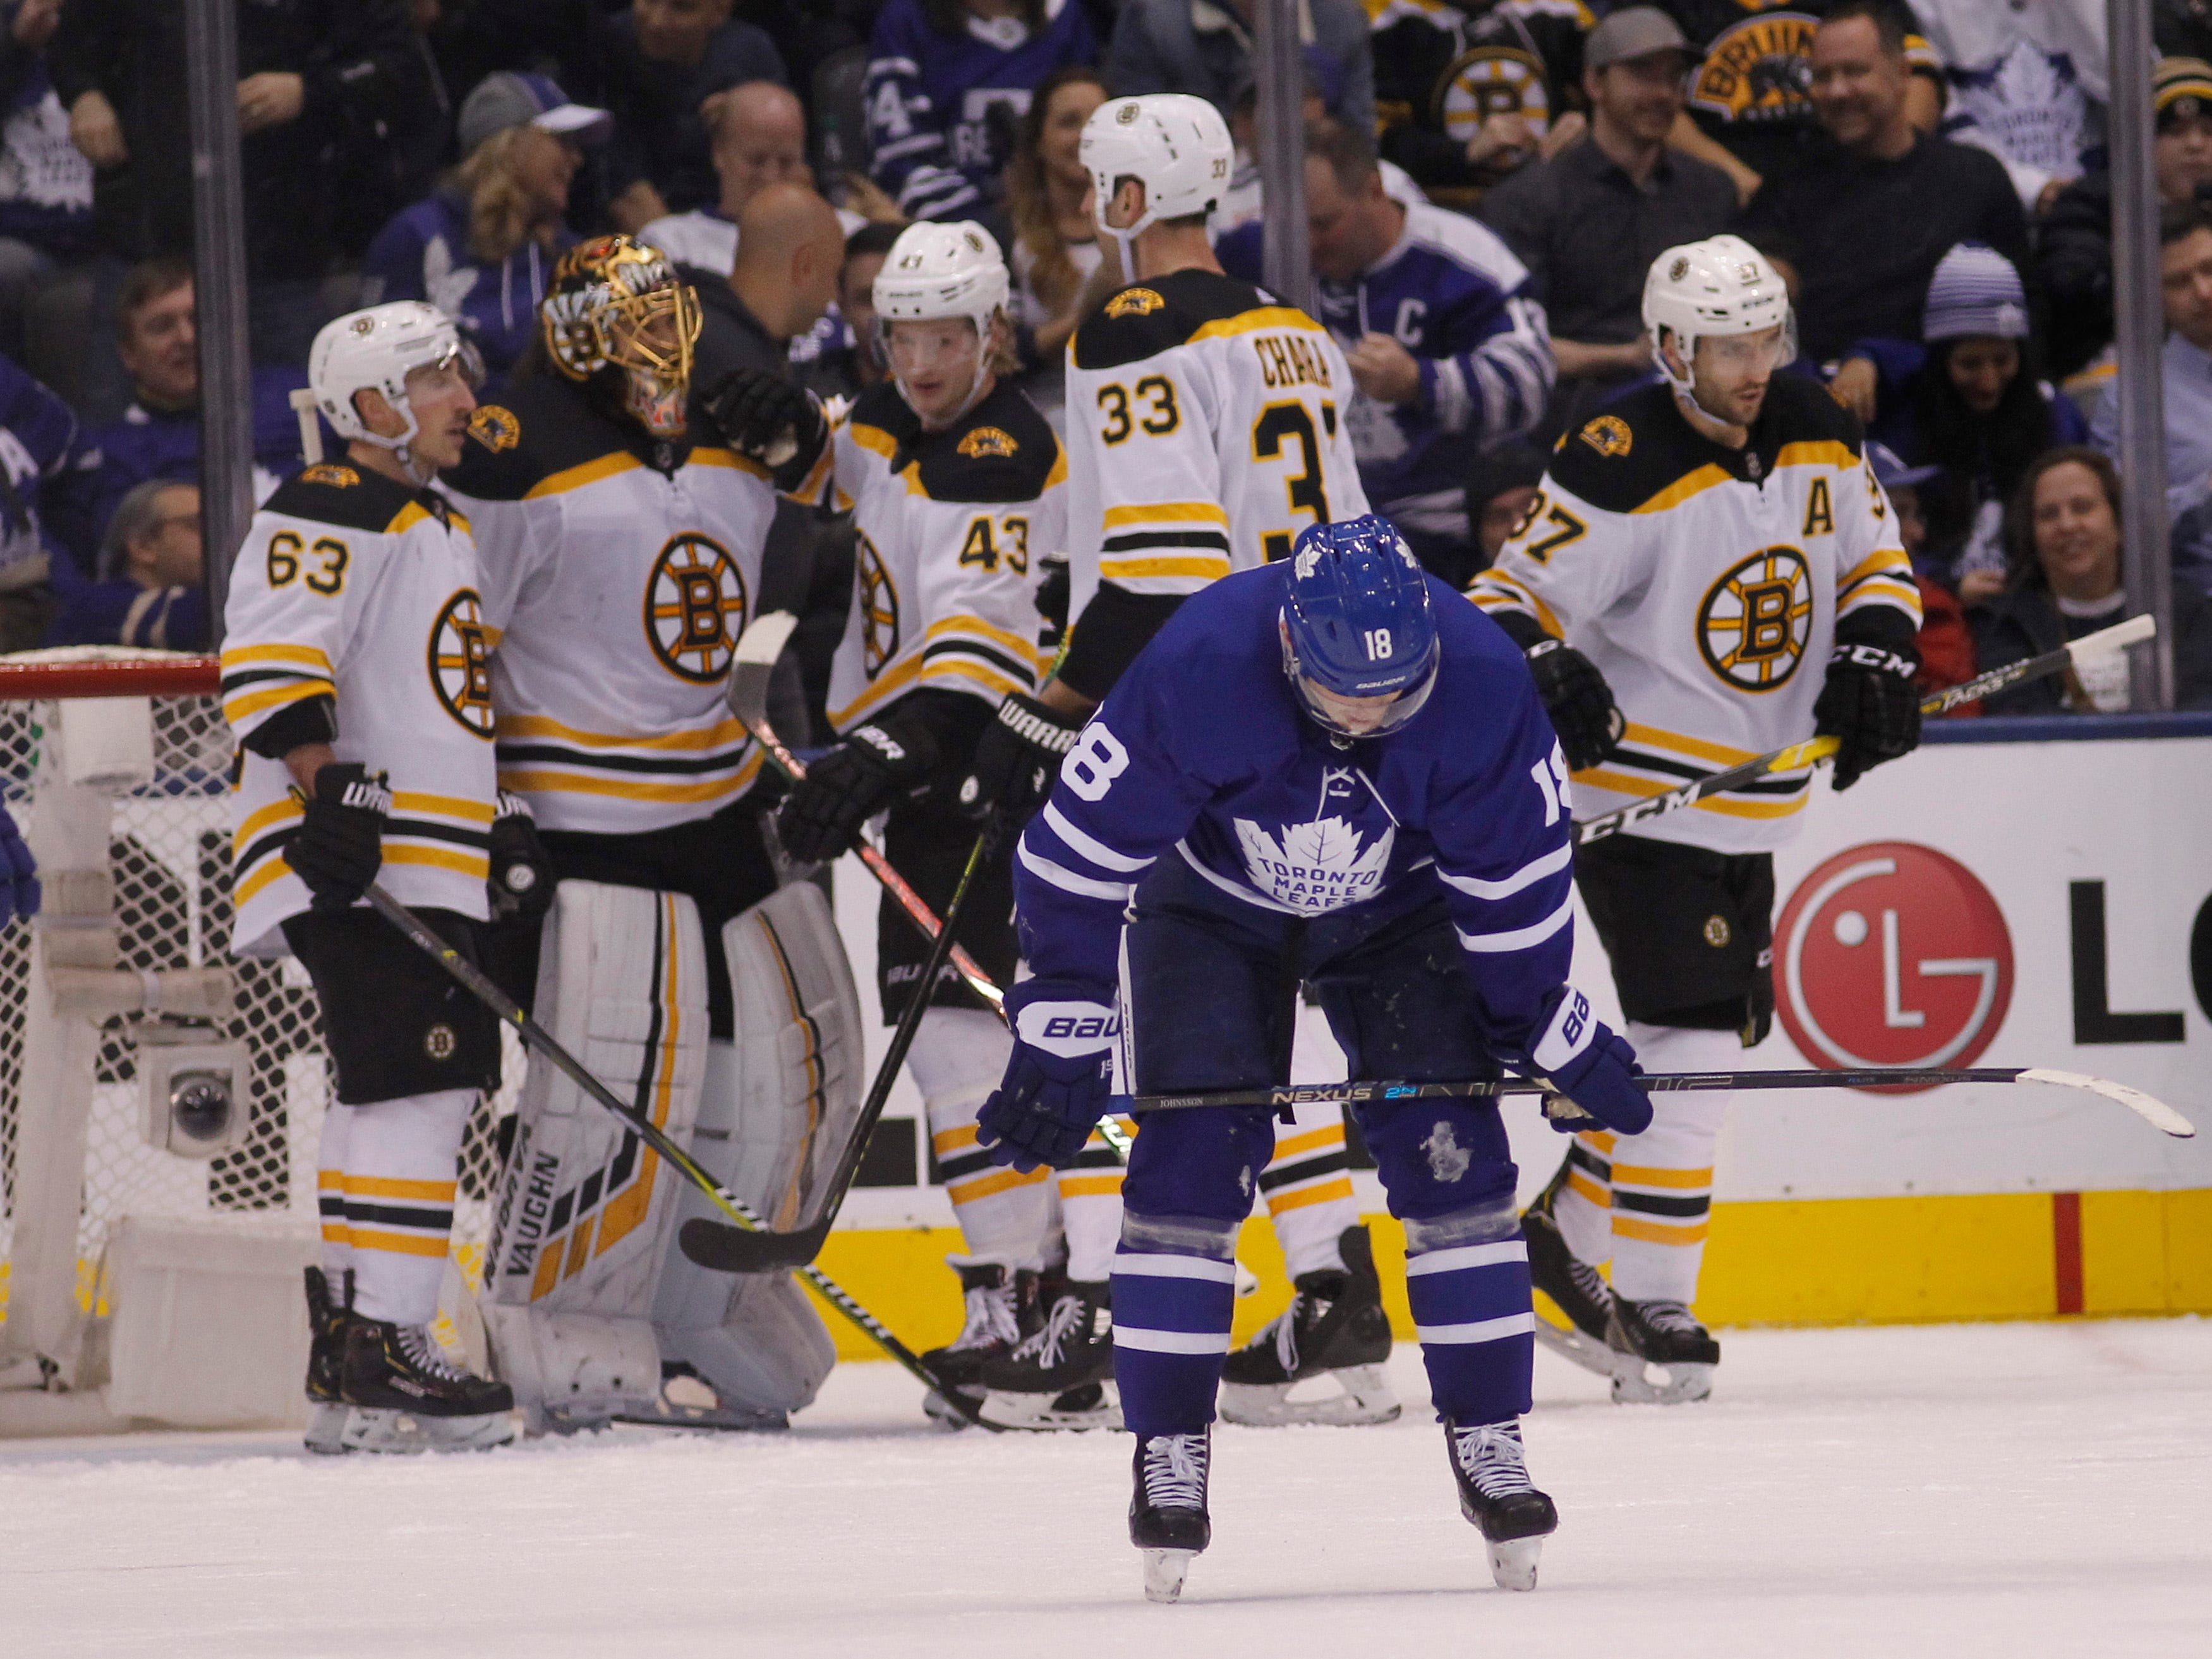 Jan. 12: Toronto Maple Leafs forward Andreas Johnsson (18) skates away as the Boston Bruins celebrate a win over the Toronto Maple Leafs at Scotiabank Arena.